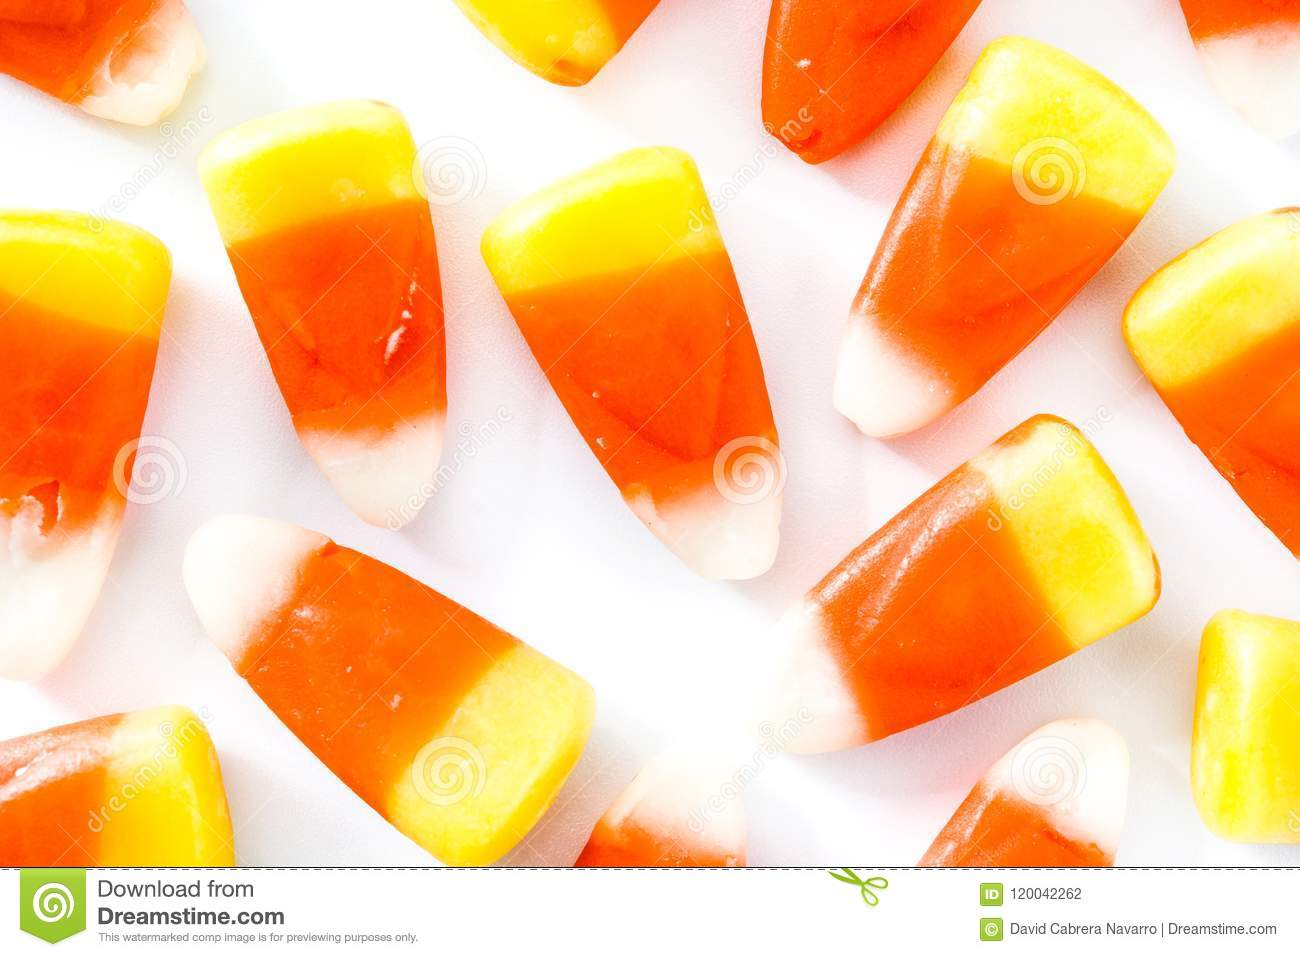 typical halloween candy corn isolated on white background. top view